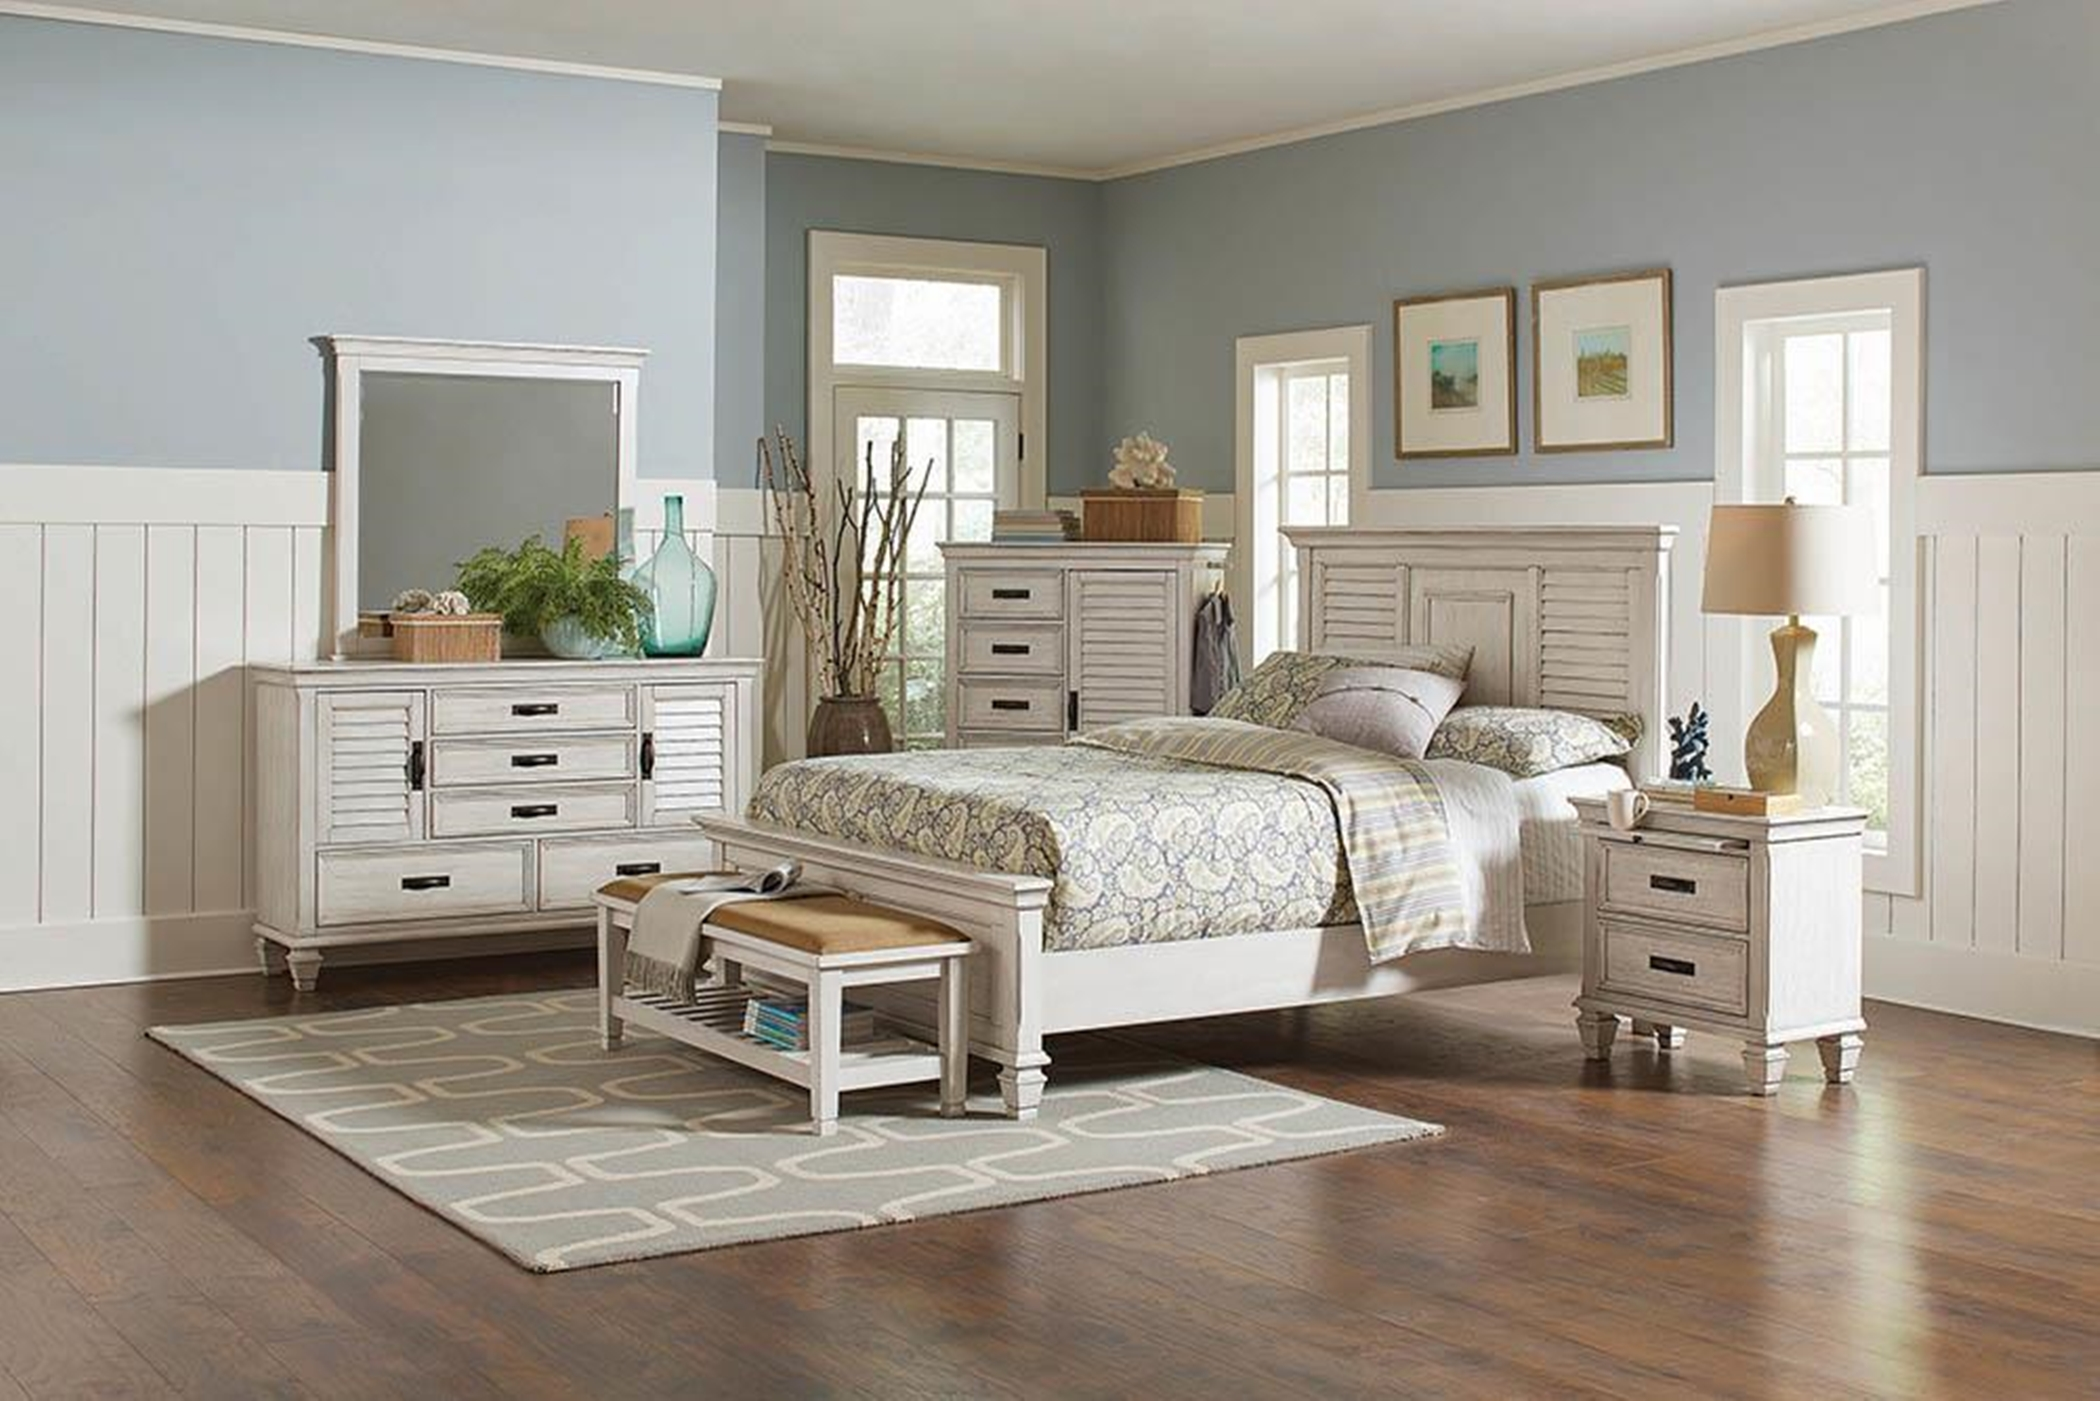 Franco Antique White E. King Bed